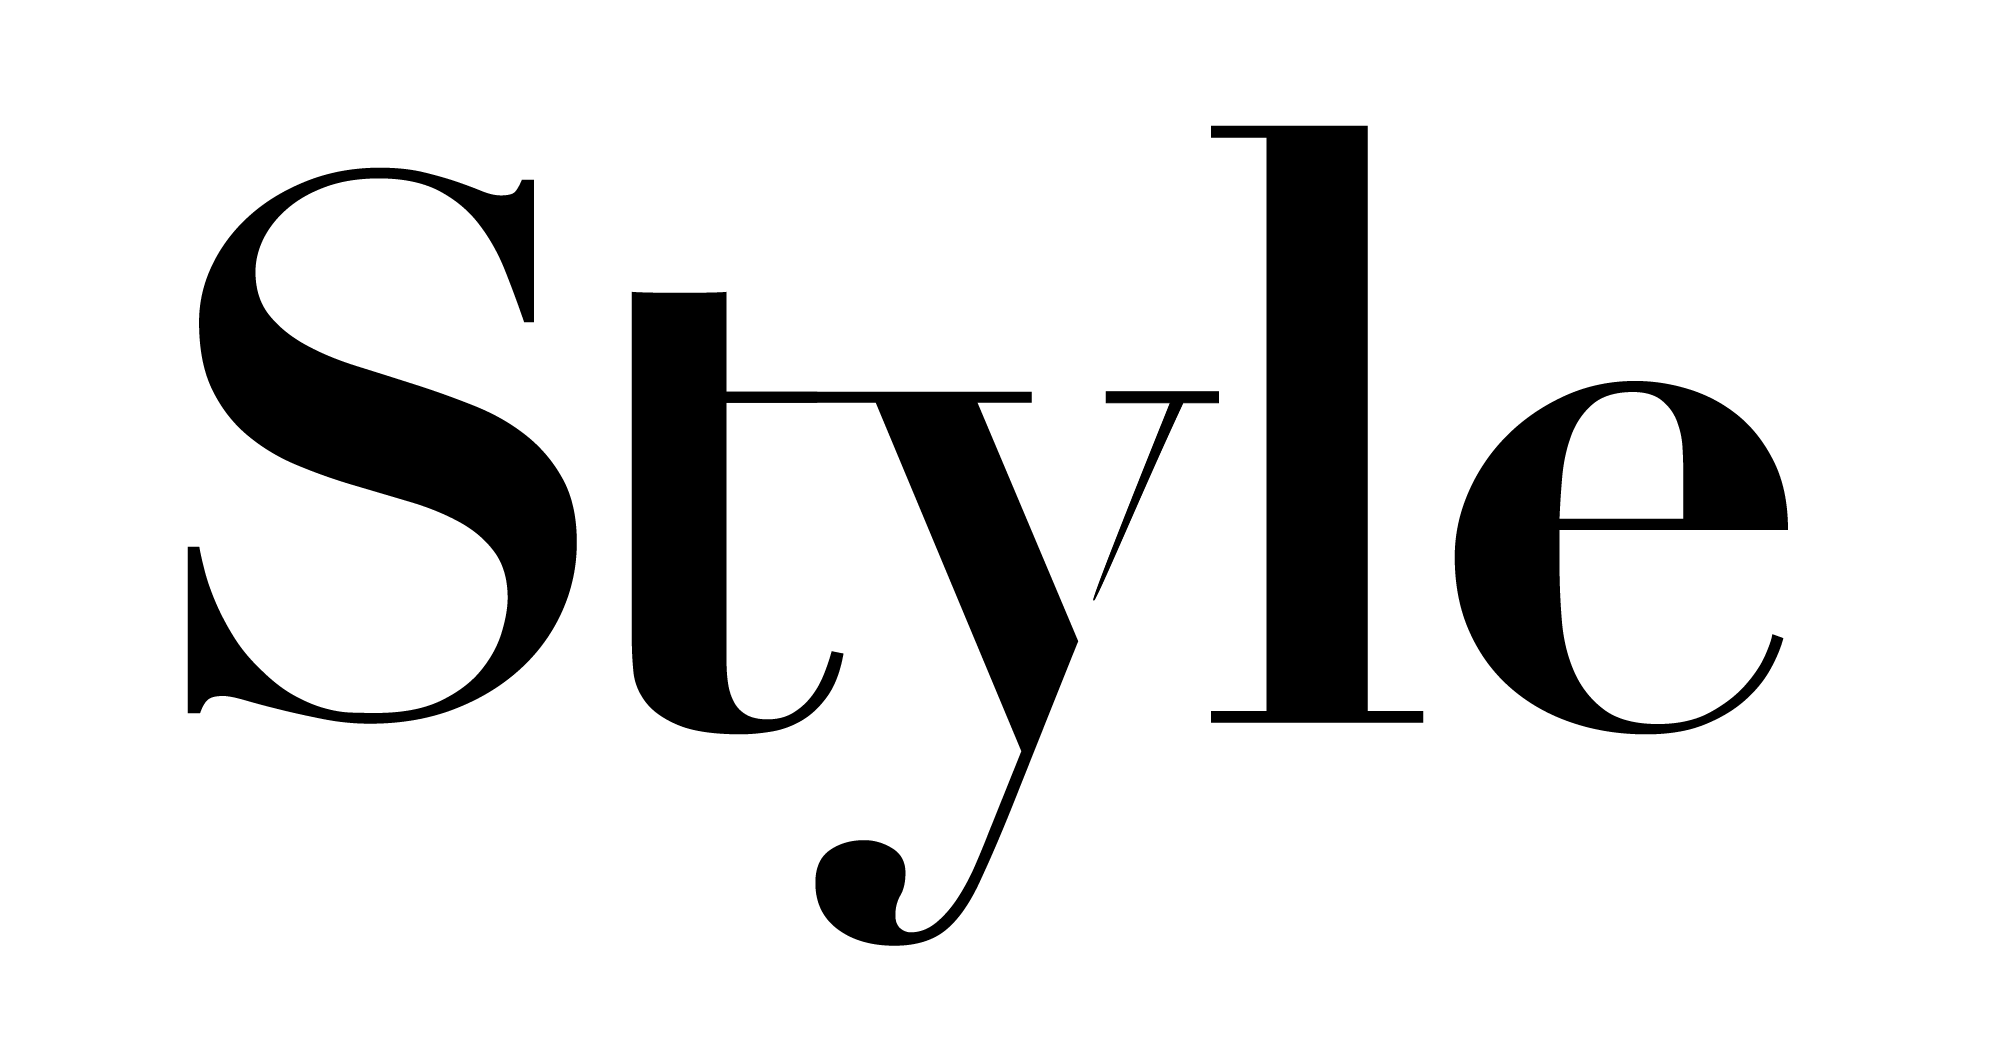 Page_Six_Style_logo-02.png